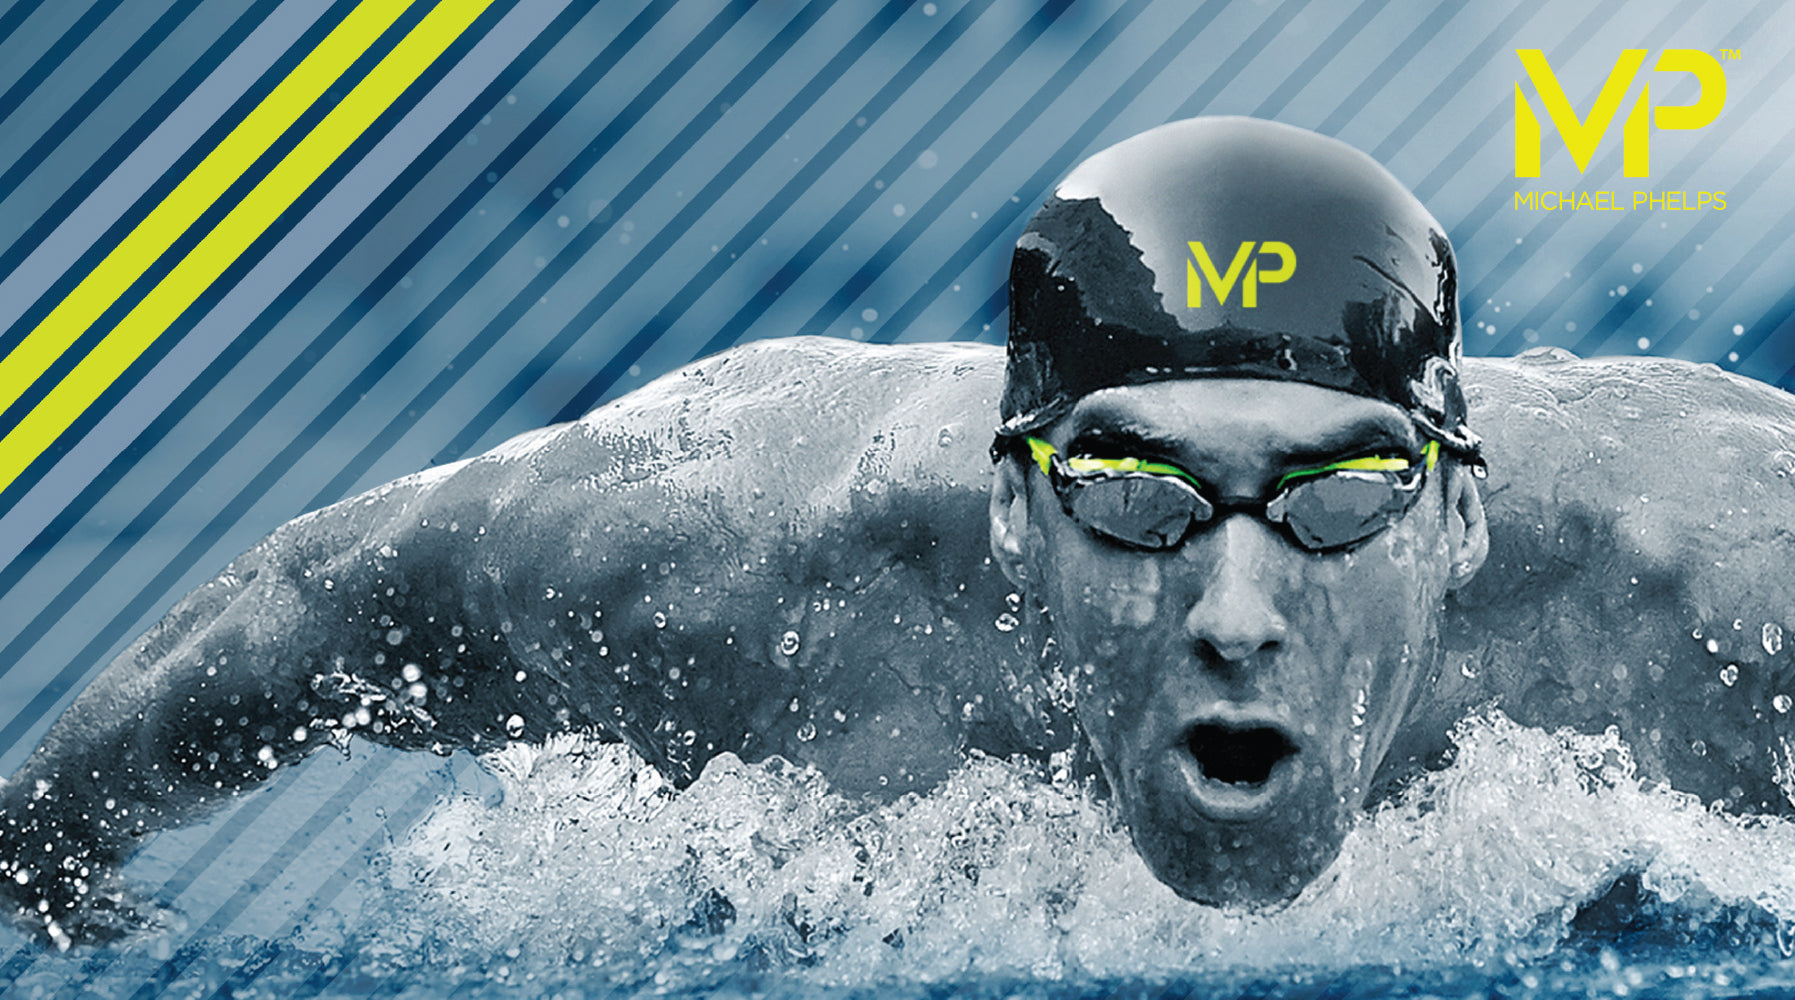 Mp Michael Phelps Swimming Goggles Swimsuits Key Power Sports